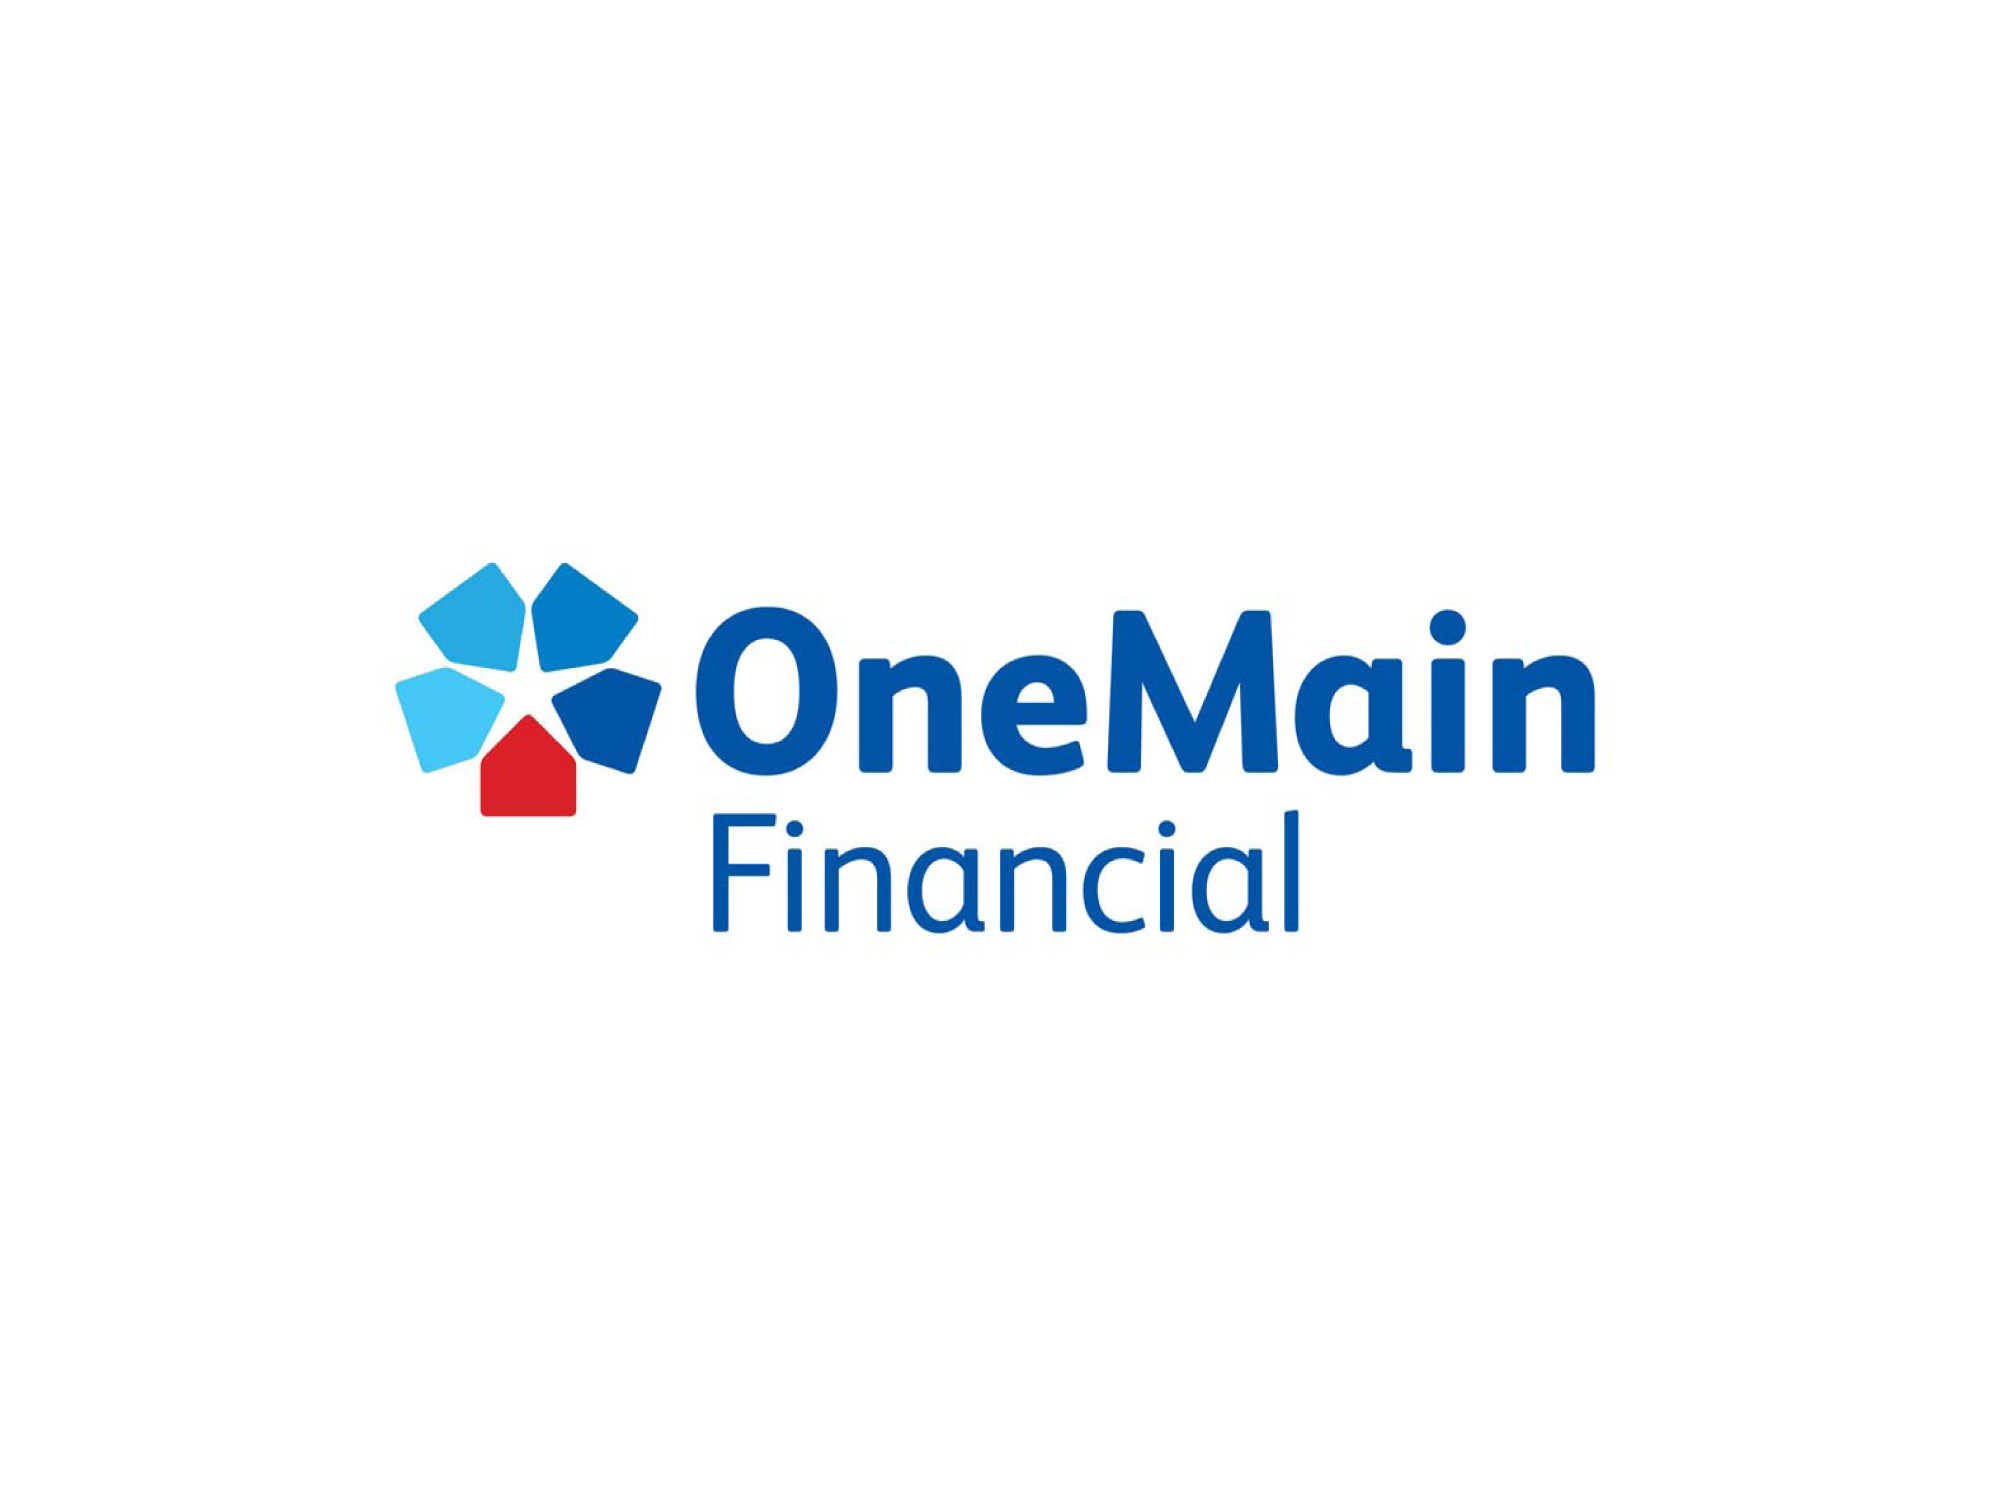 one-main-financial-logo.jpg